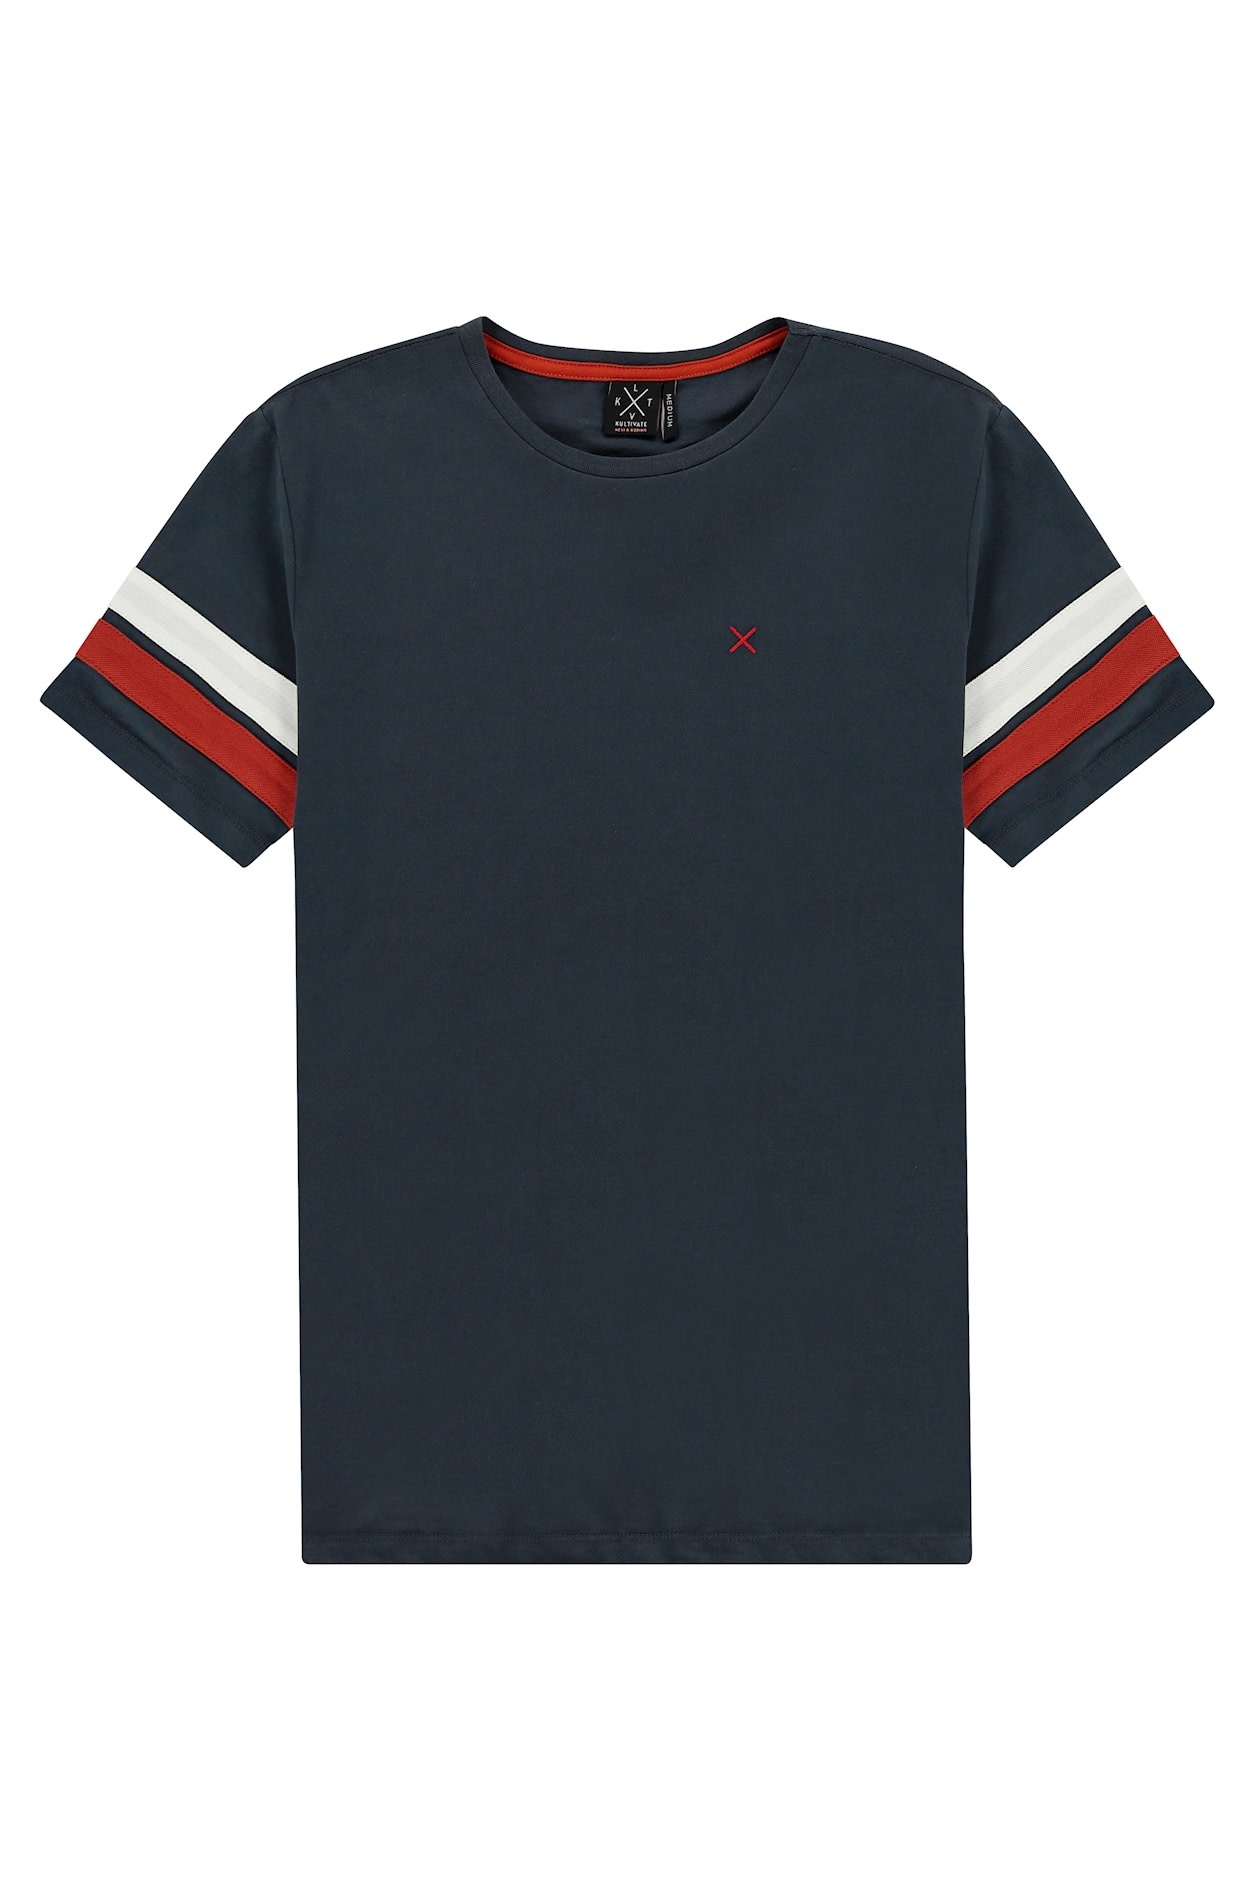 Kultivate Kultivate Mixed Tee India Ink Grey